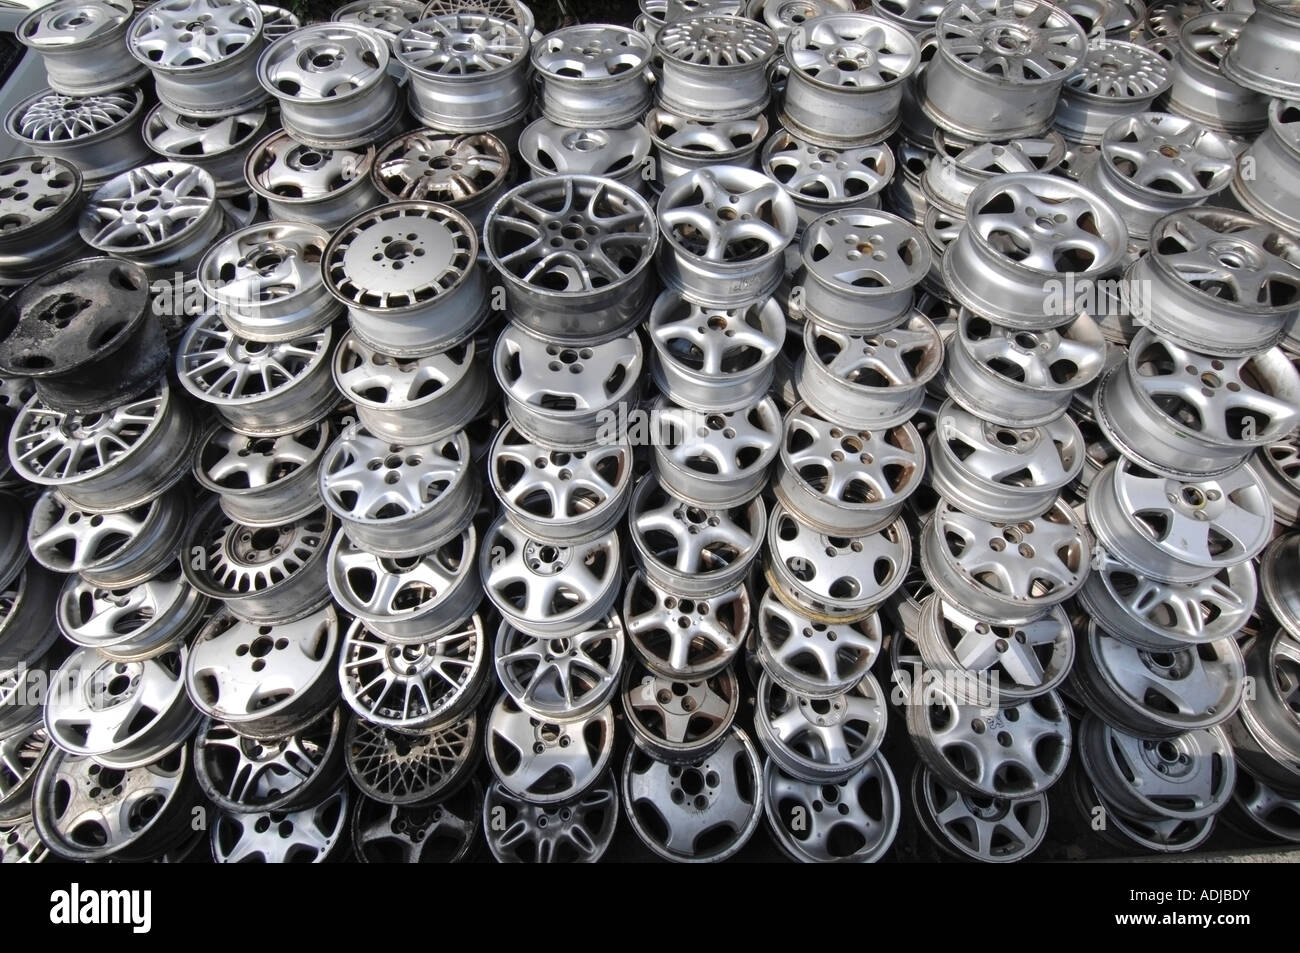 A pile of discarded second hand alloy car wheels at a scrapyard awaiting recycling - Stock Image